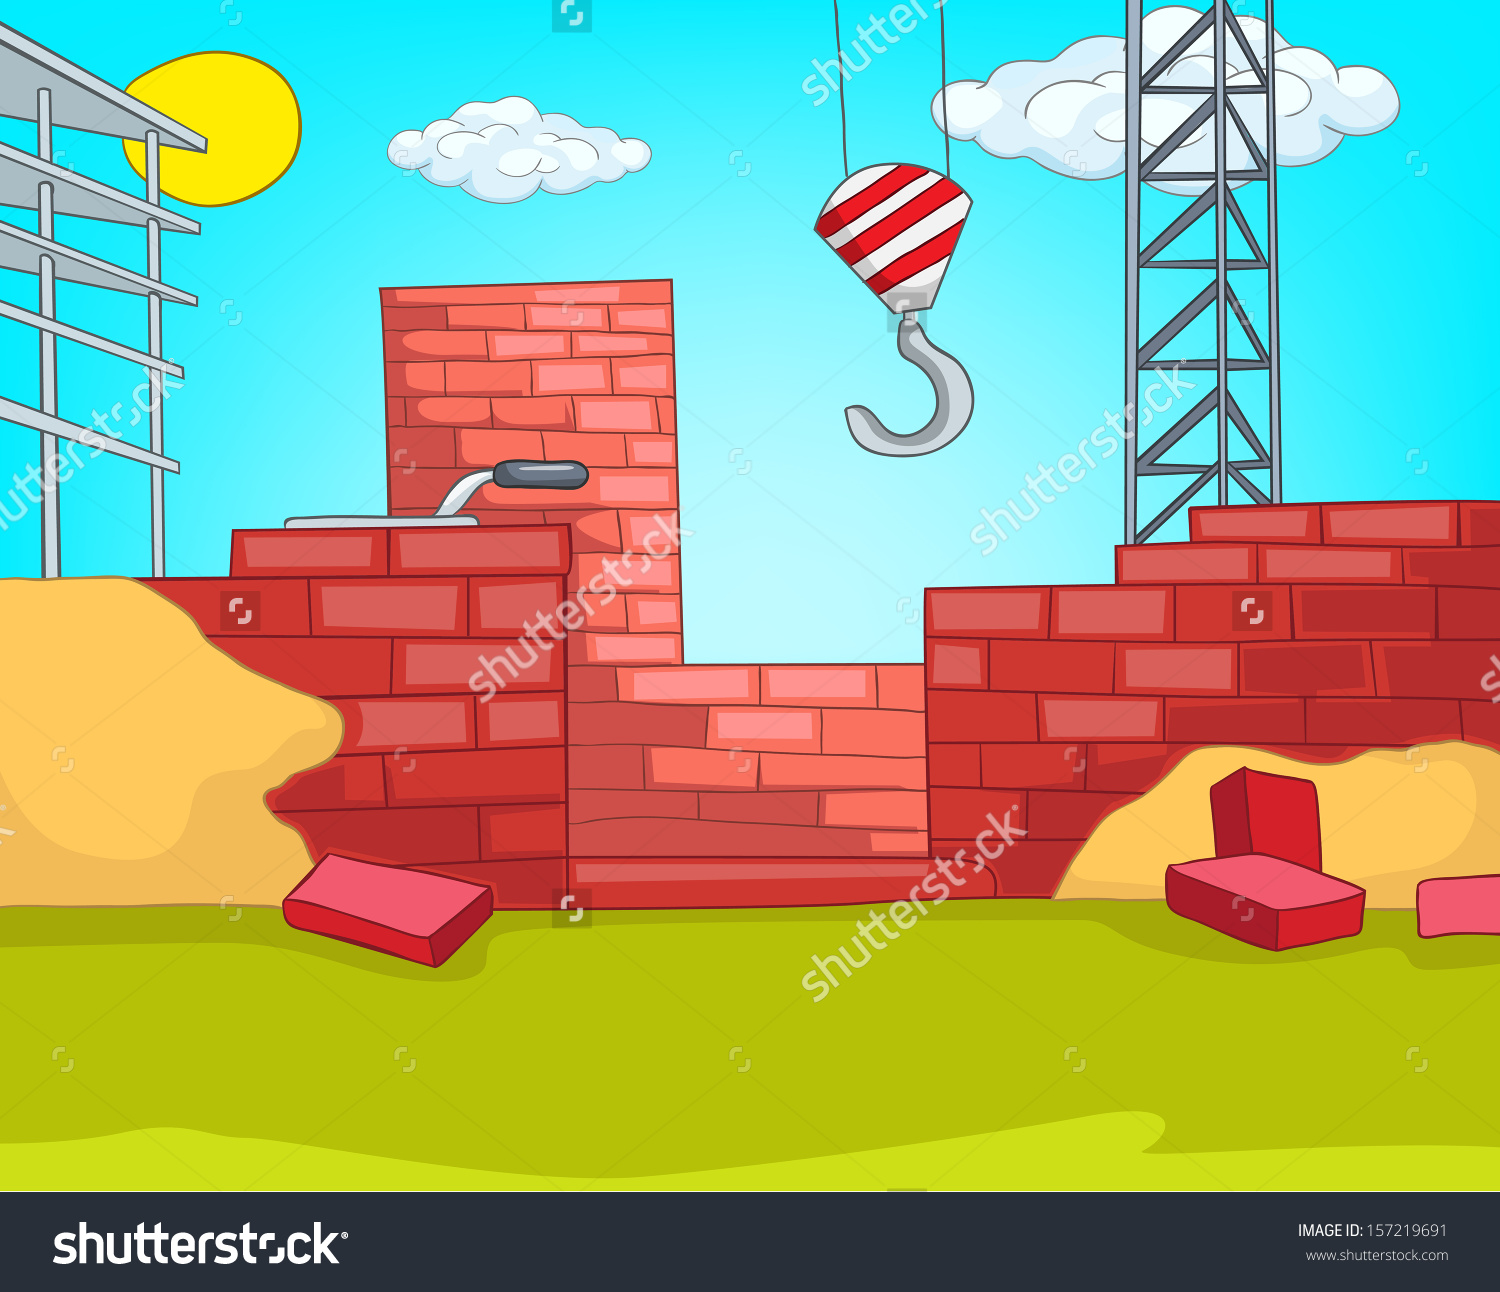 Construction site background clipart graphic free House Construction Cartoon Background Vector Illustration Stock ... graphic free